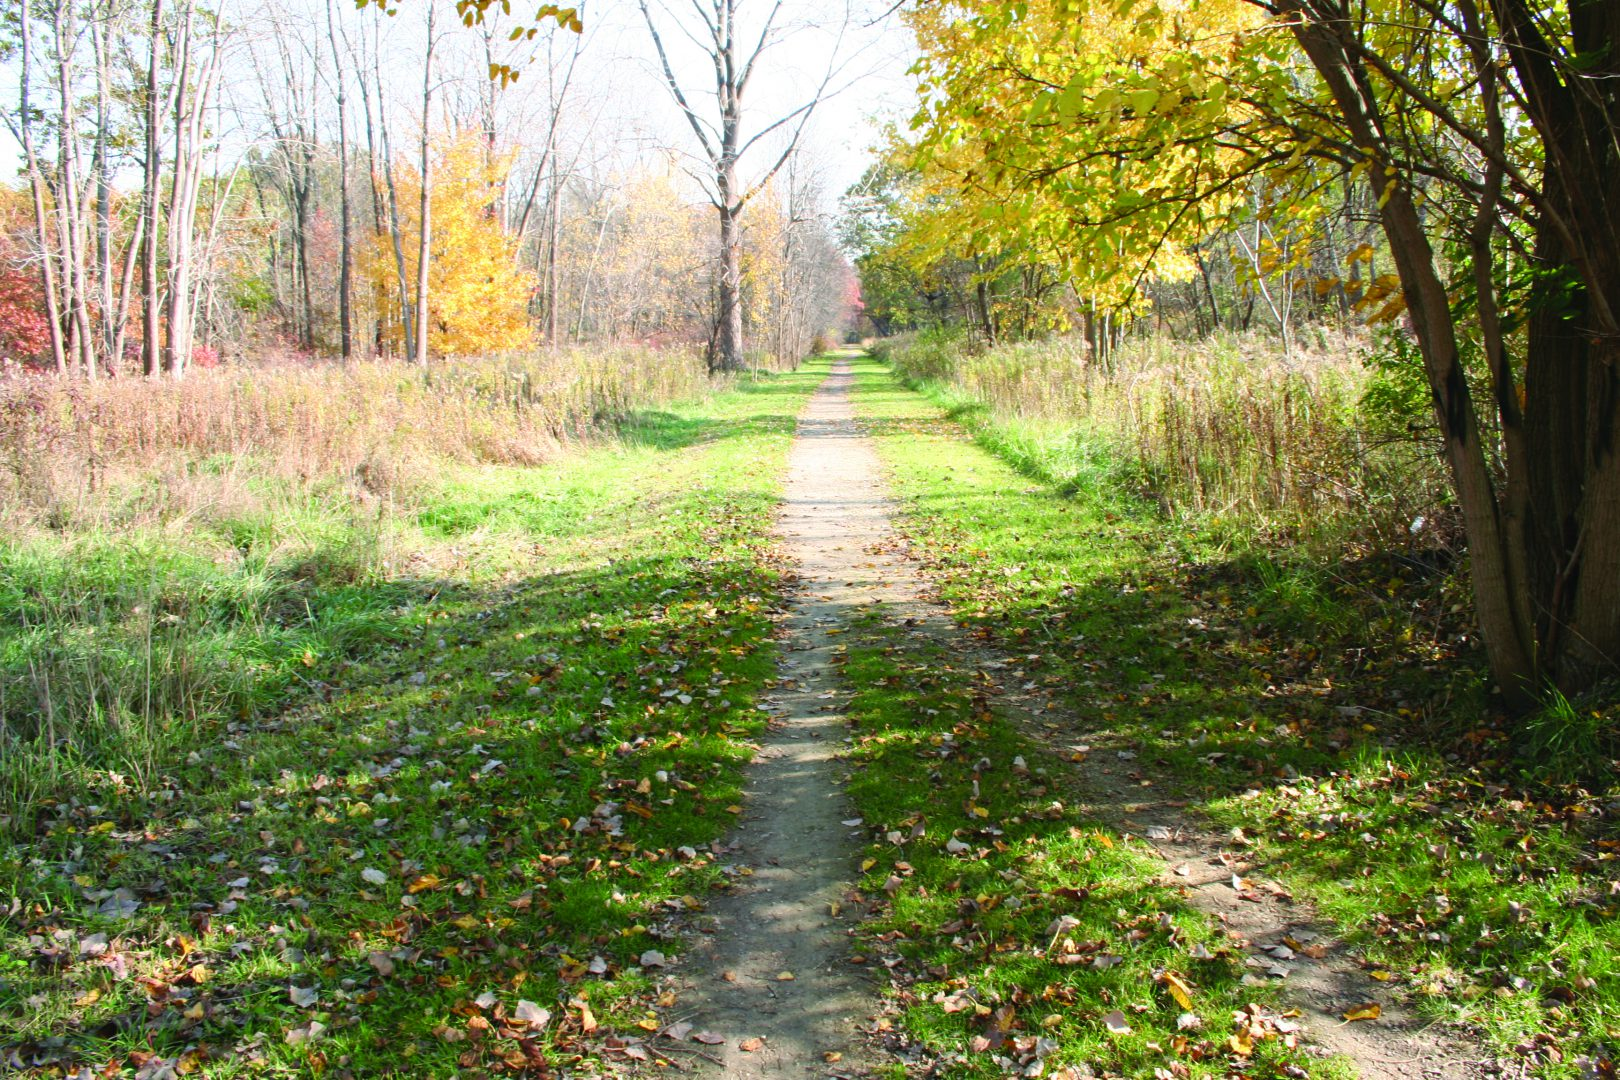 a picture of the greenway trail